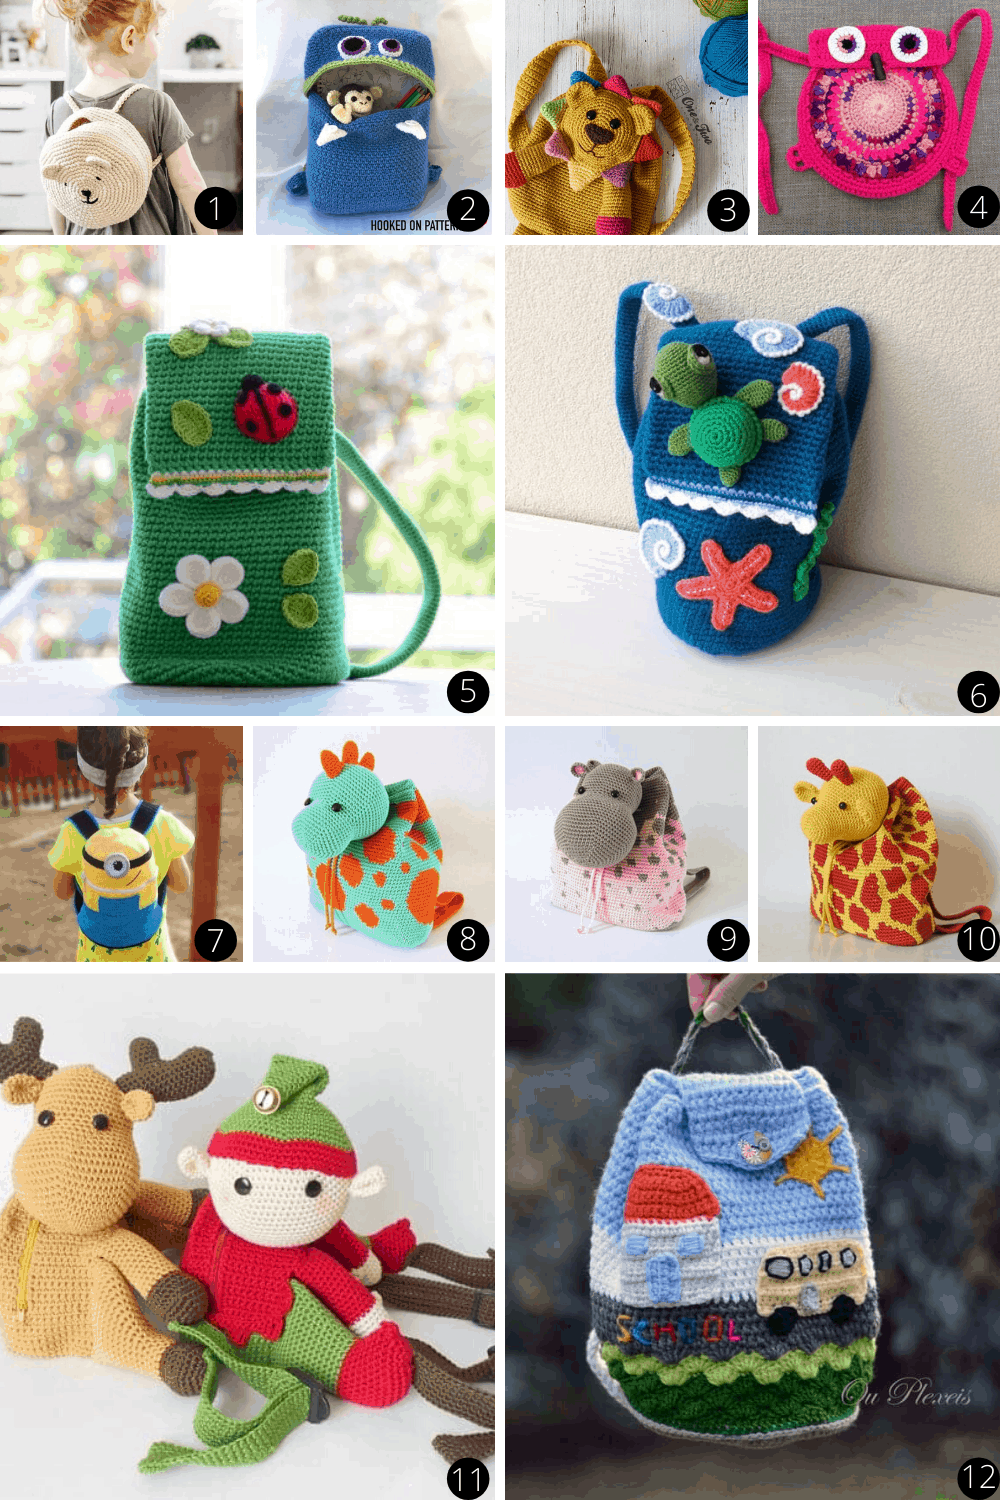 Whether you are looking for handmade crochet backpacks, or patterns so you can make your own - your kids are sure to love these designs! #crochet #handmadegifts